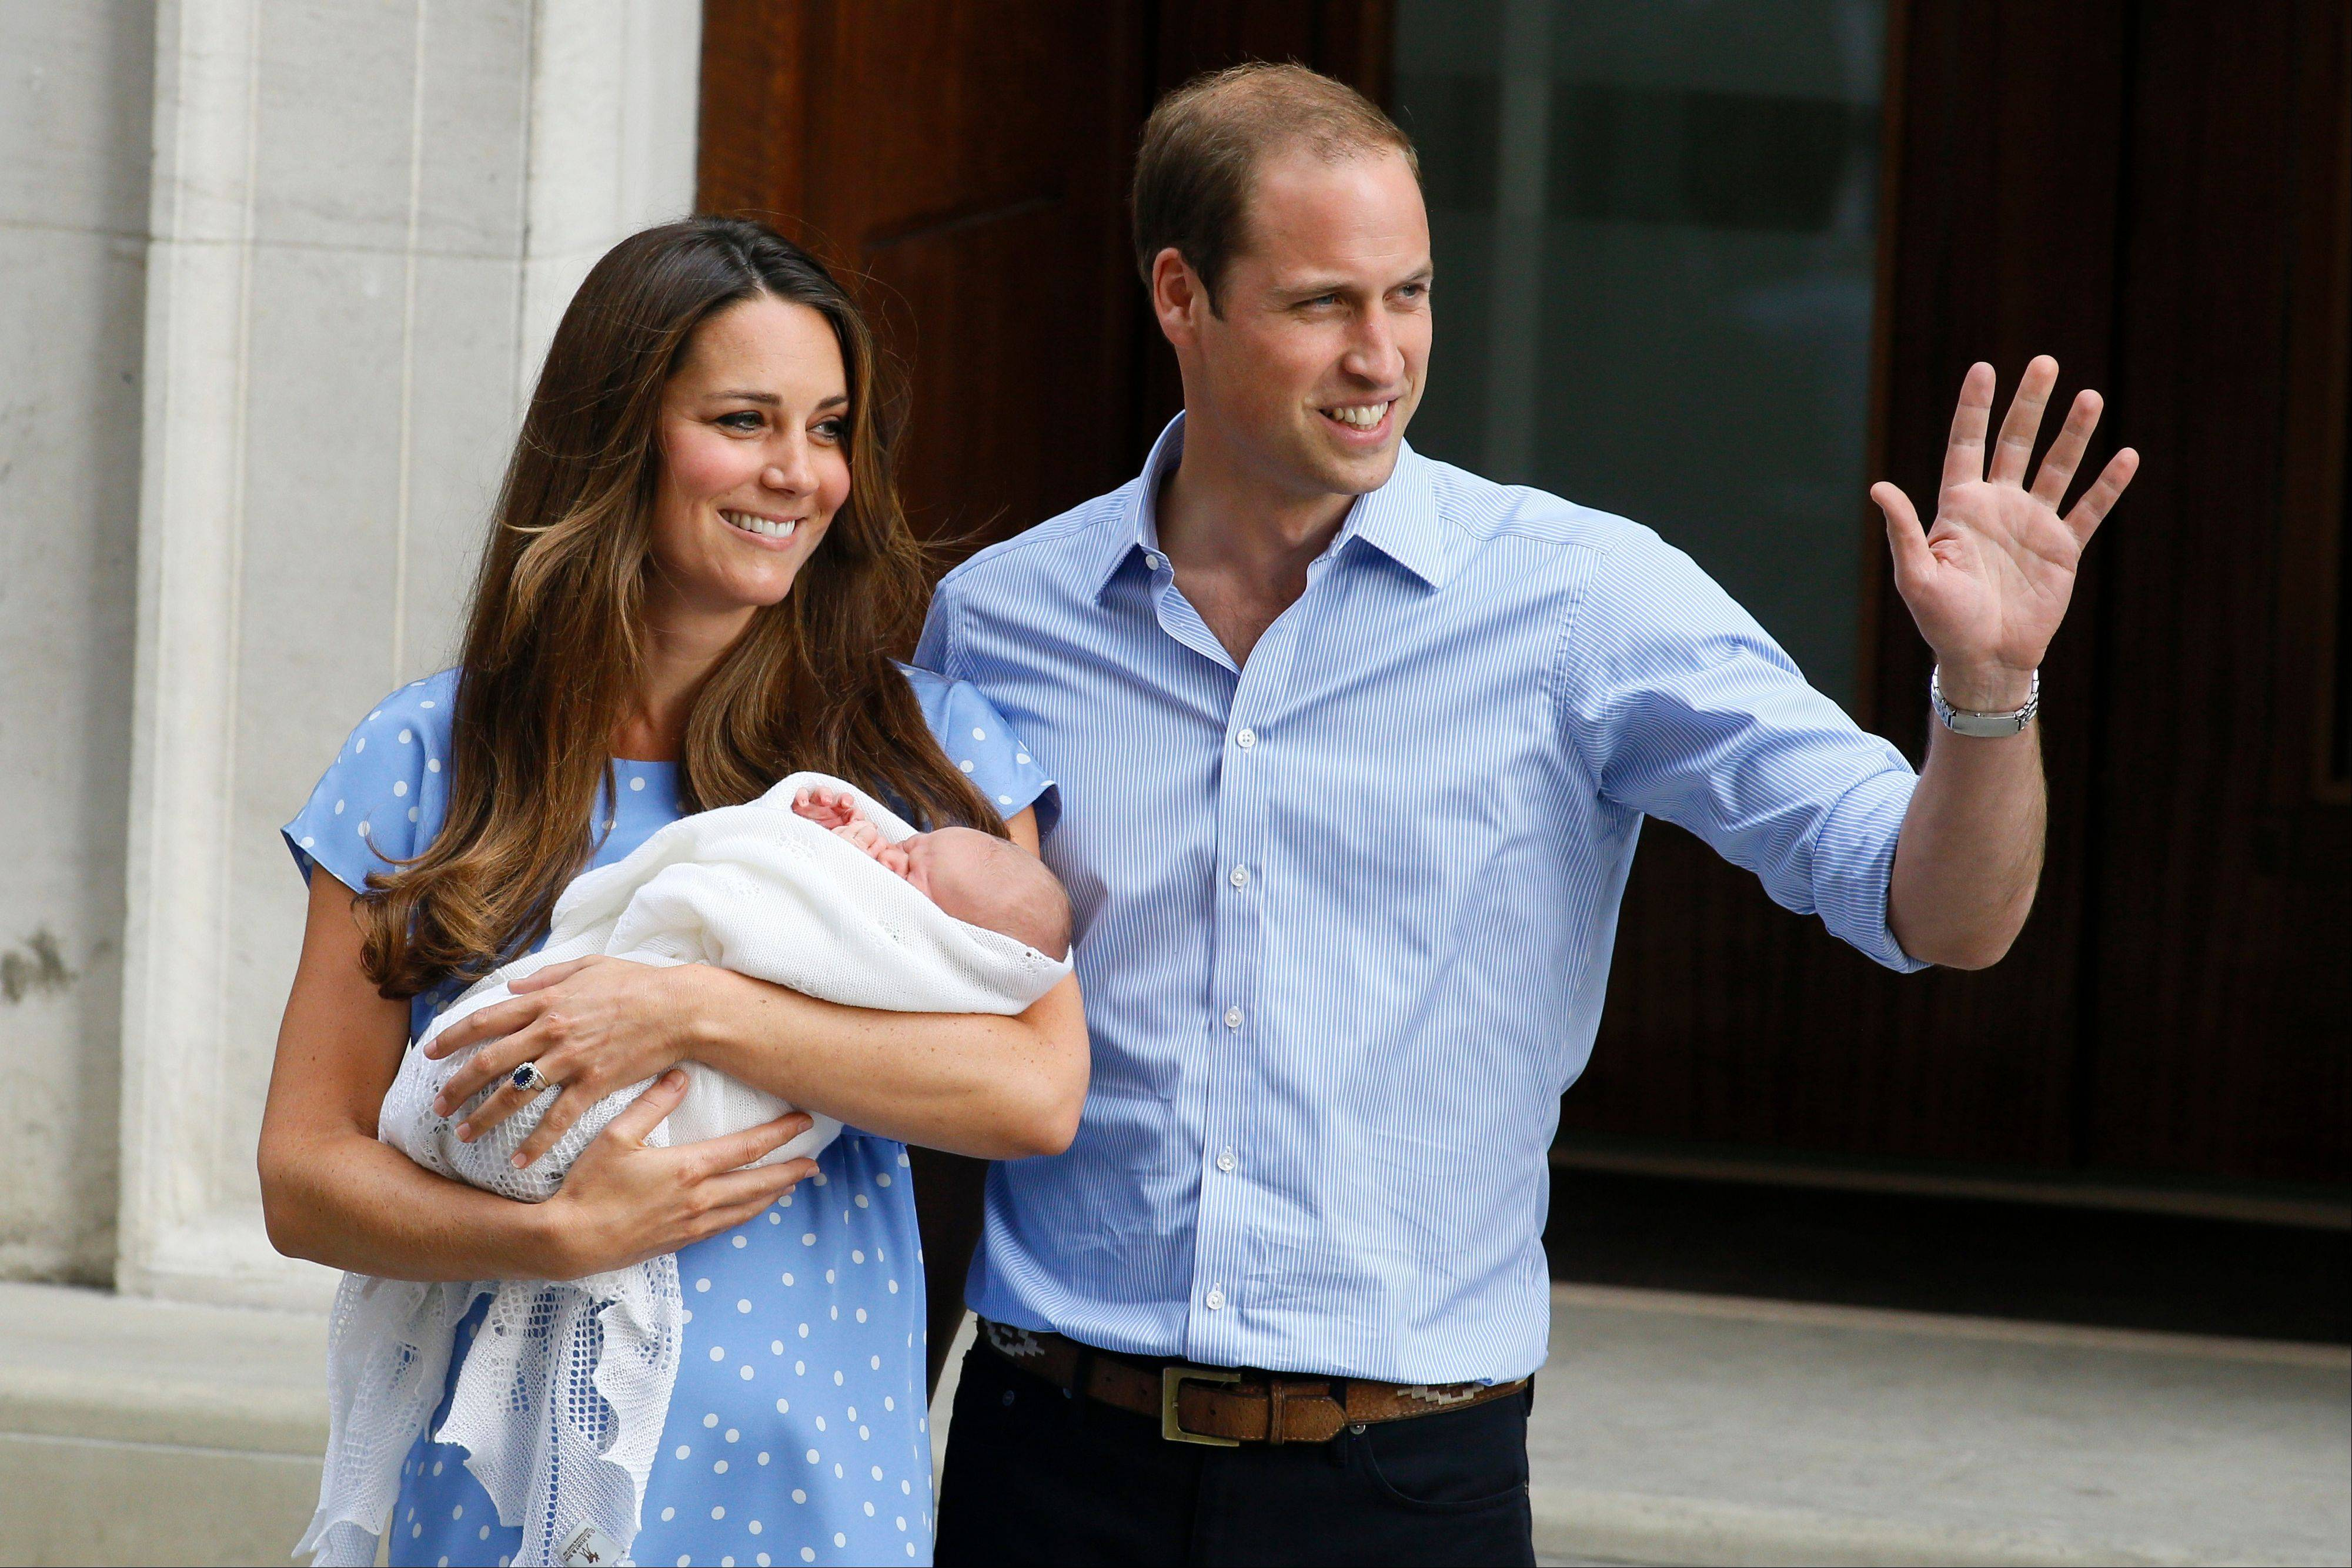 Britain's Prince William, right, and Kate, Duchess of Cambridge, hold the Prince of Cambridge, Tuesday July 23, 2013, outside St. Mary's Hospital exclusive Lindo Wing in London where the Duchess gave birth on Monday July 22.